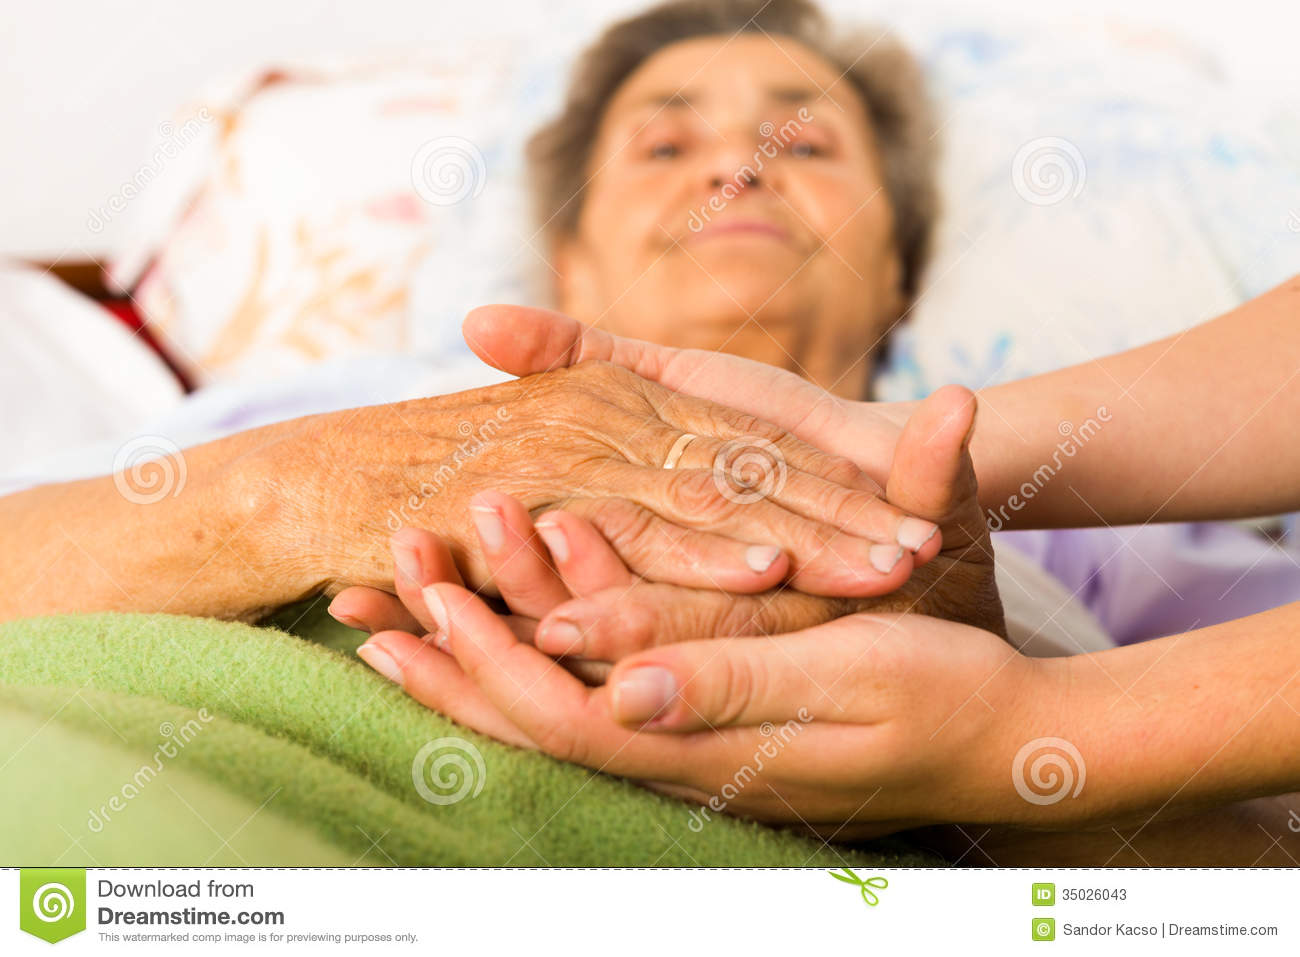 Index in addition Stock Photos Caring Nurse Holding Hands Kind Elderly Ladys Bed Image35026043 moreover Royalty Free Stock Photography Sunburst Clouds Image20799687 additionally Lustre Art Deco 1930 also Royalty Free Stock Photo Australian Pattern Image12876725. on art deco in arts design